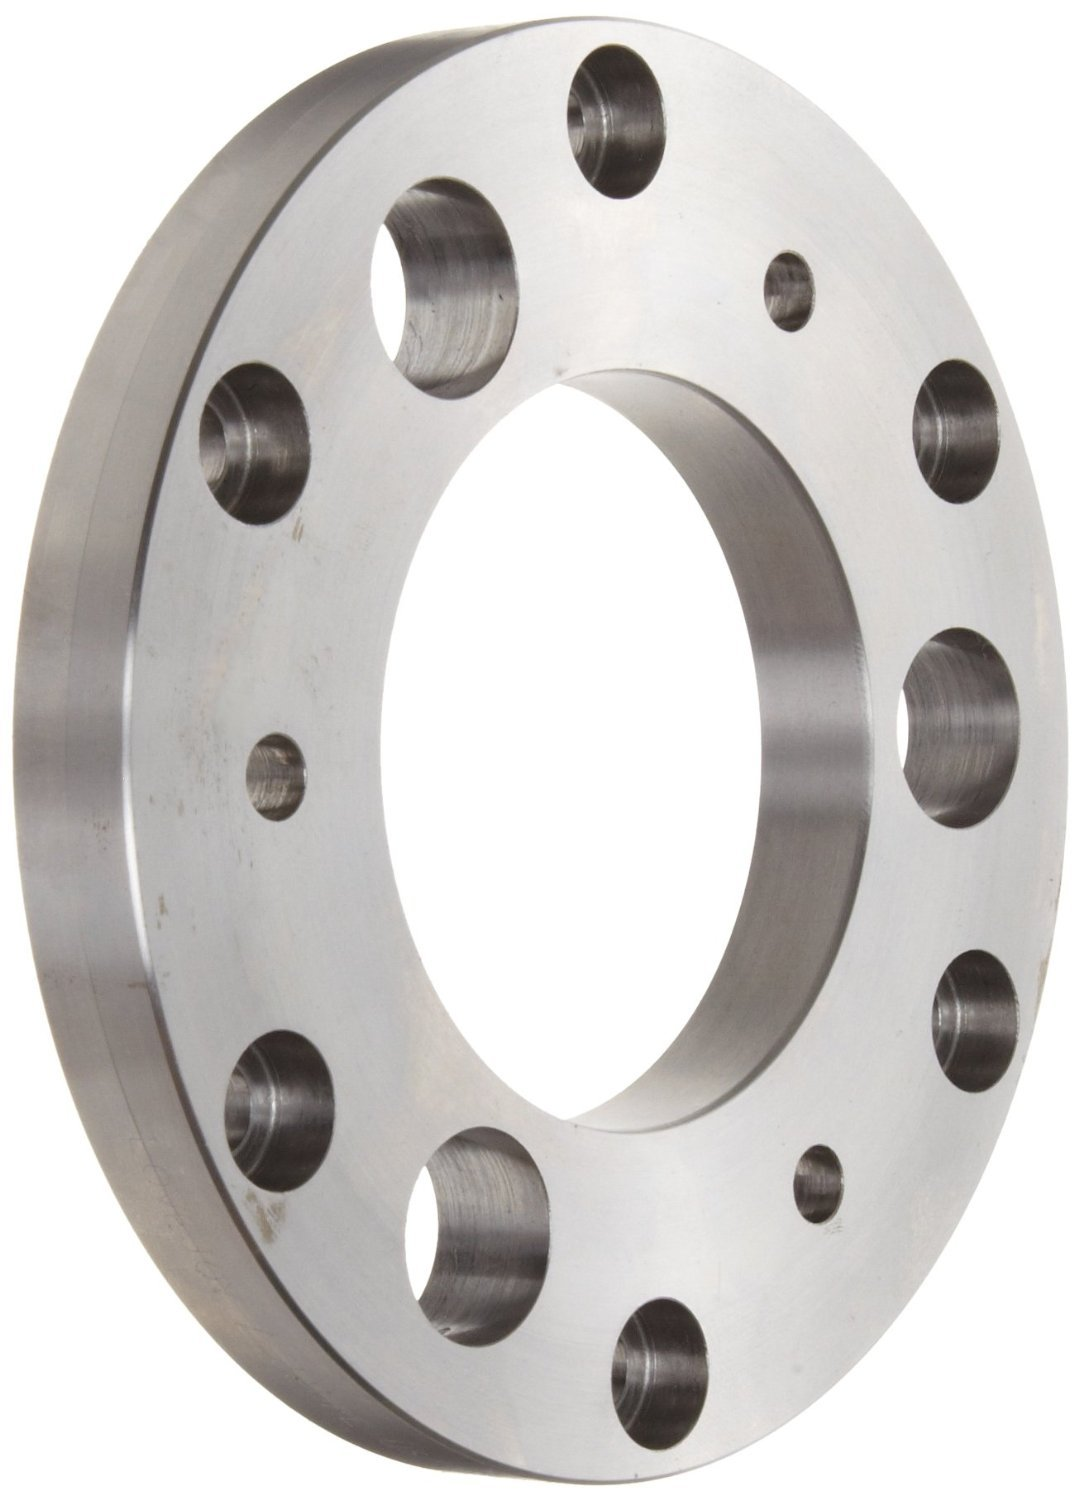 Lovejoy 93411 Size SXCS110-6 Mounting Ring for Close Coupled Split Spacer Coupling